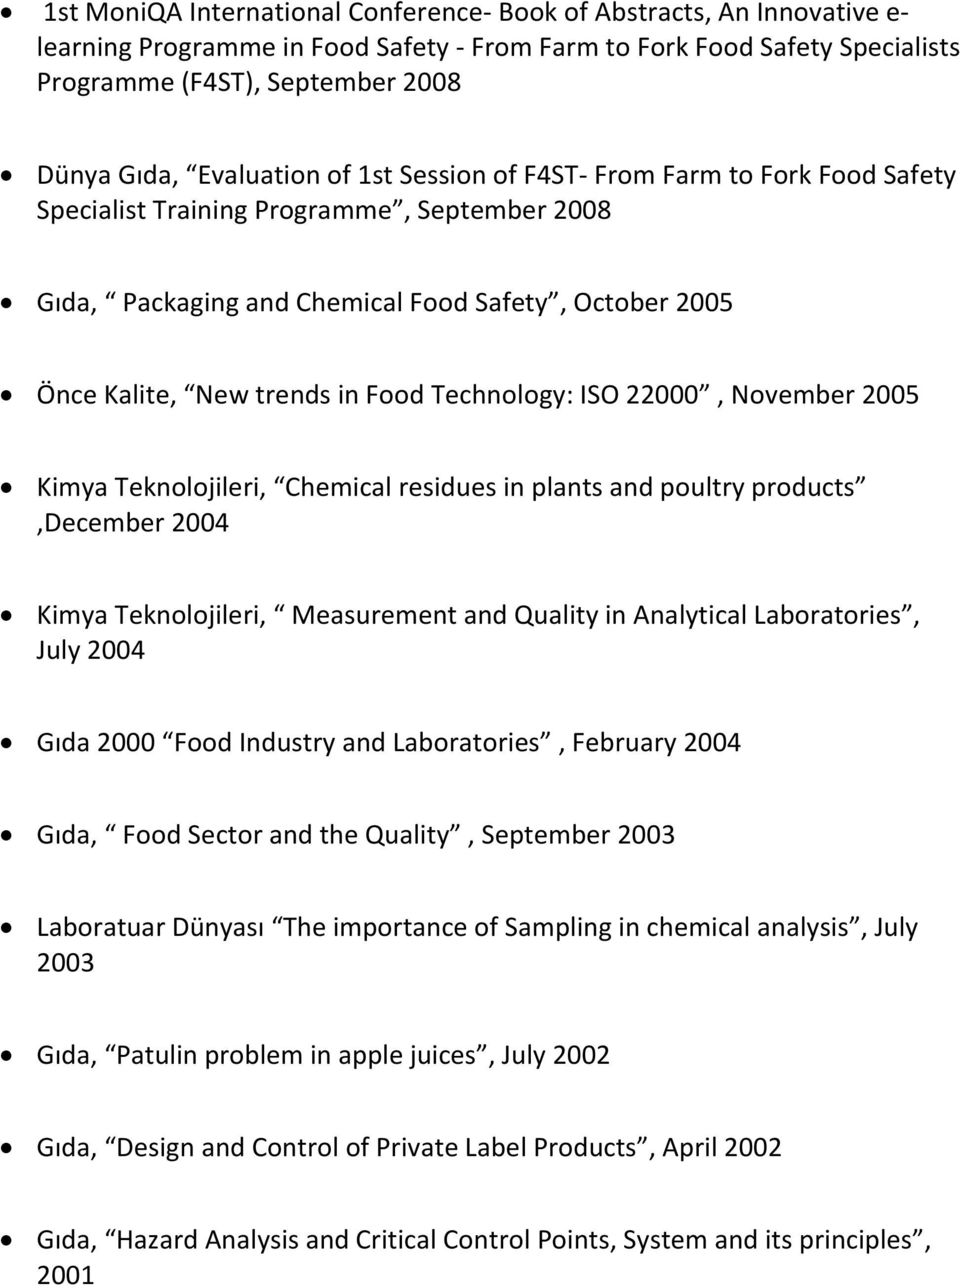 Technology: ISO 22000, November 2005 Kimya Teknolojileri, Chemical residues in plants and poultry products,december 2004 Kimya Teknolojileri, Measurement and Quality in Analytical Laboratories, July